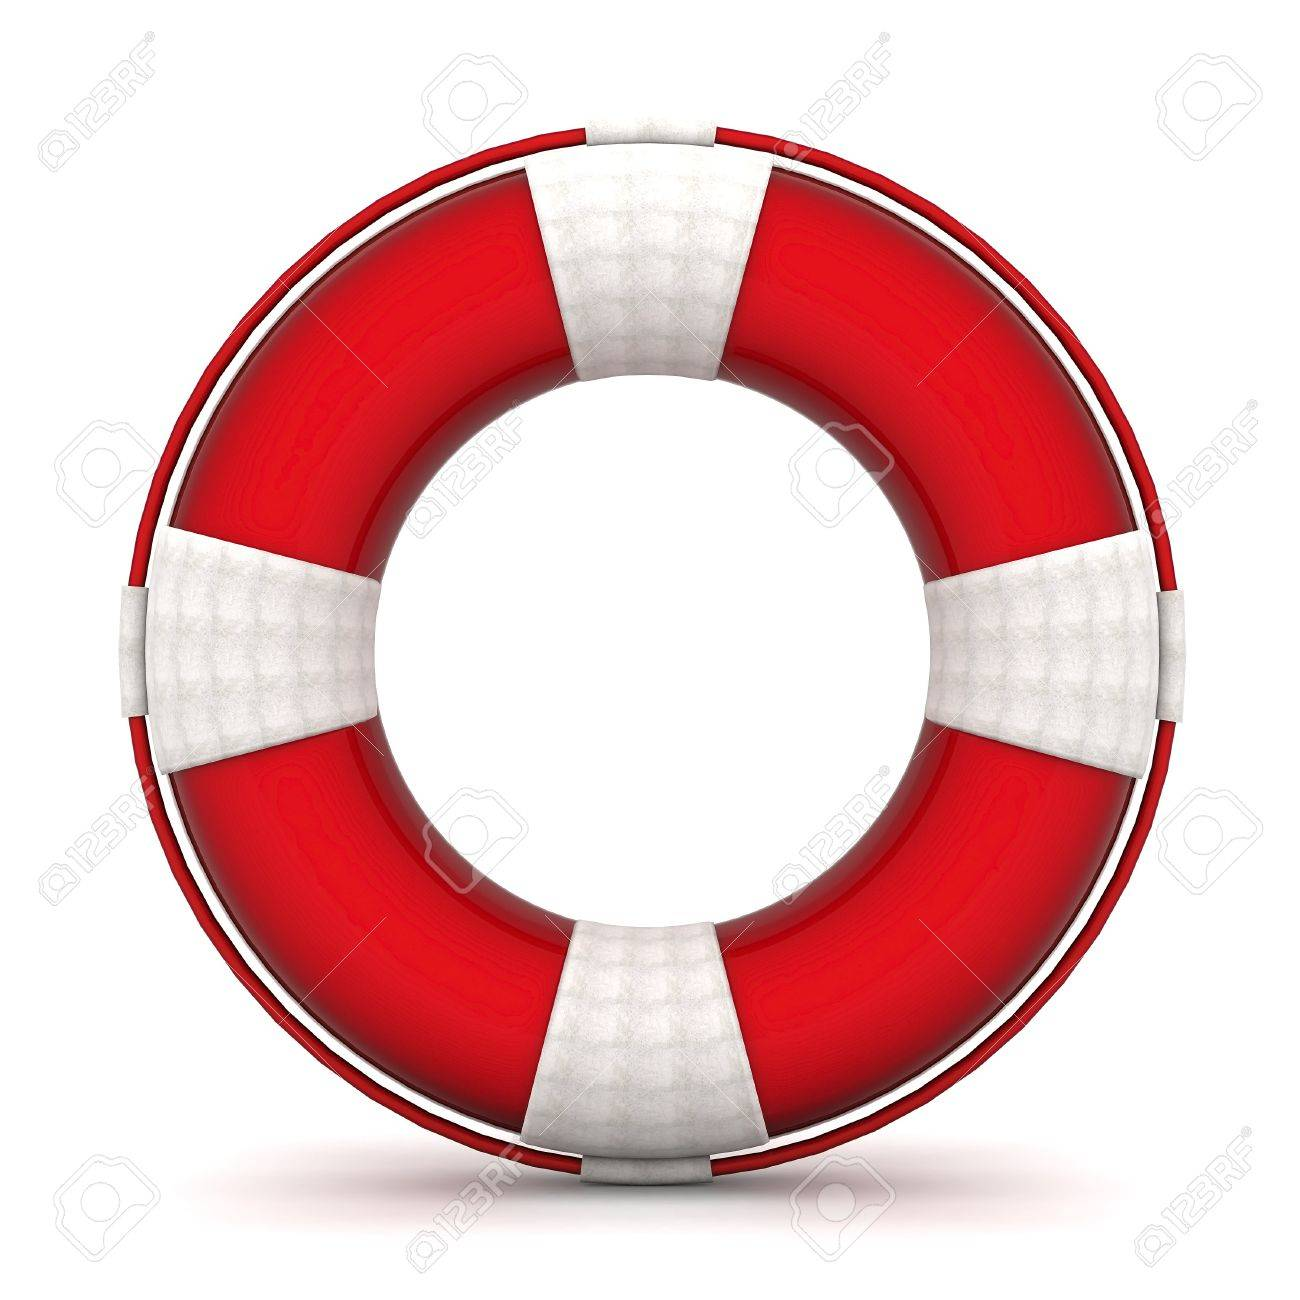 The image of a life buoy on a white background Stock Photo - 10614670